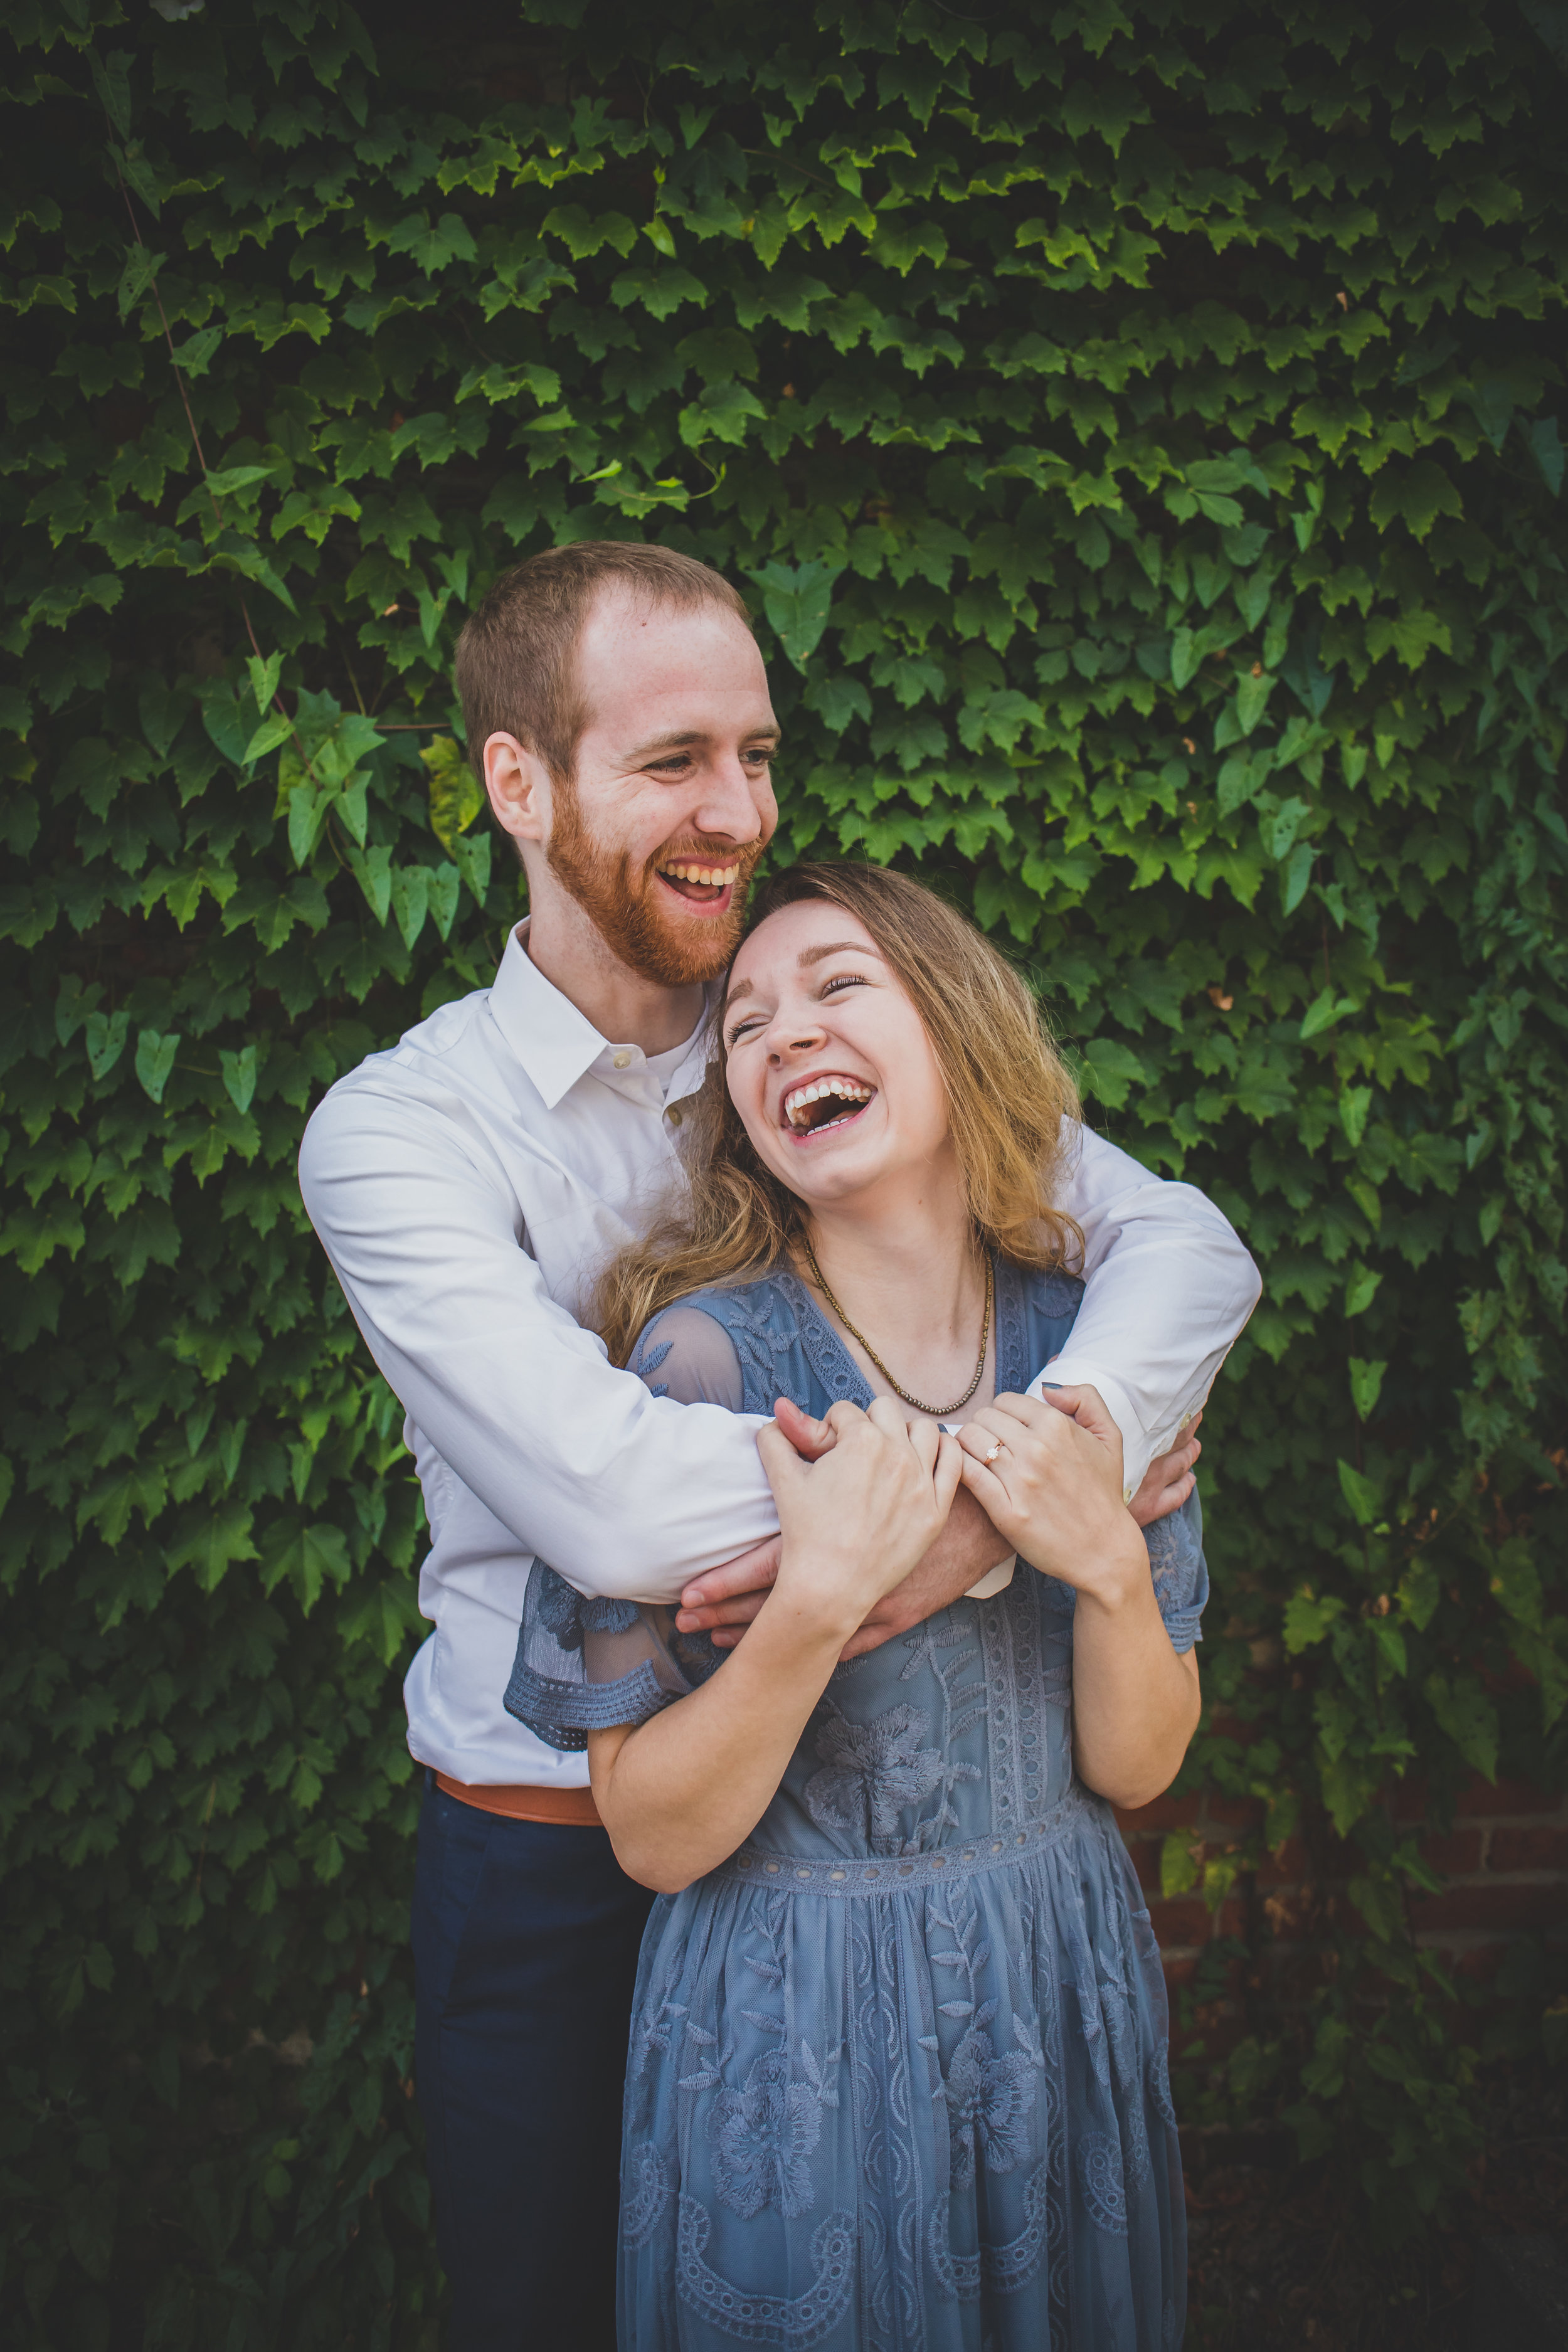 Michelle Carter Photography-Downtown Medina Engagement Session-Brianna and Josh-48.jpg